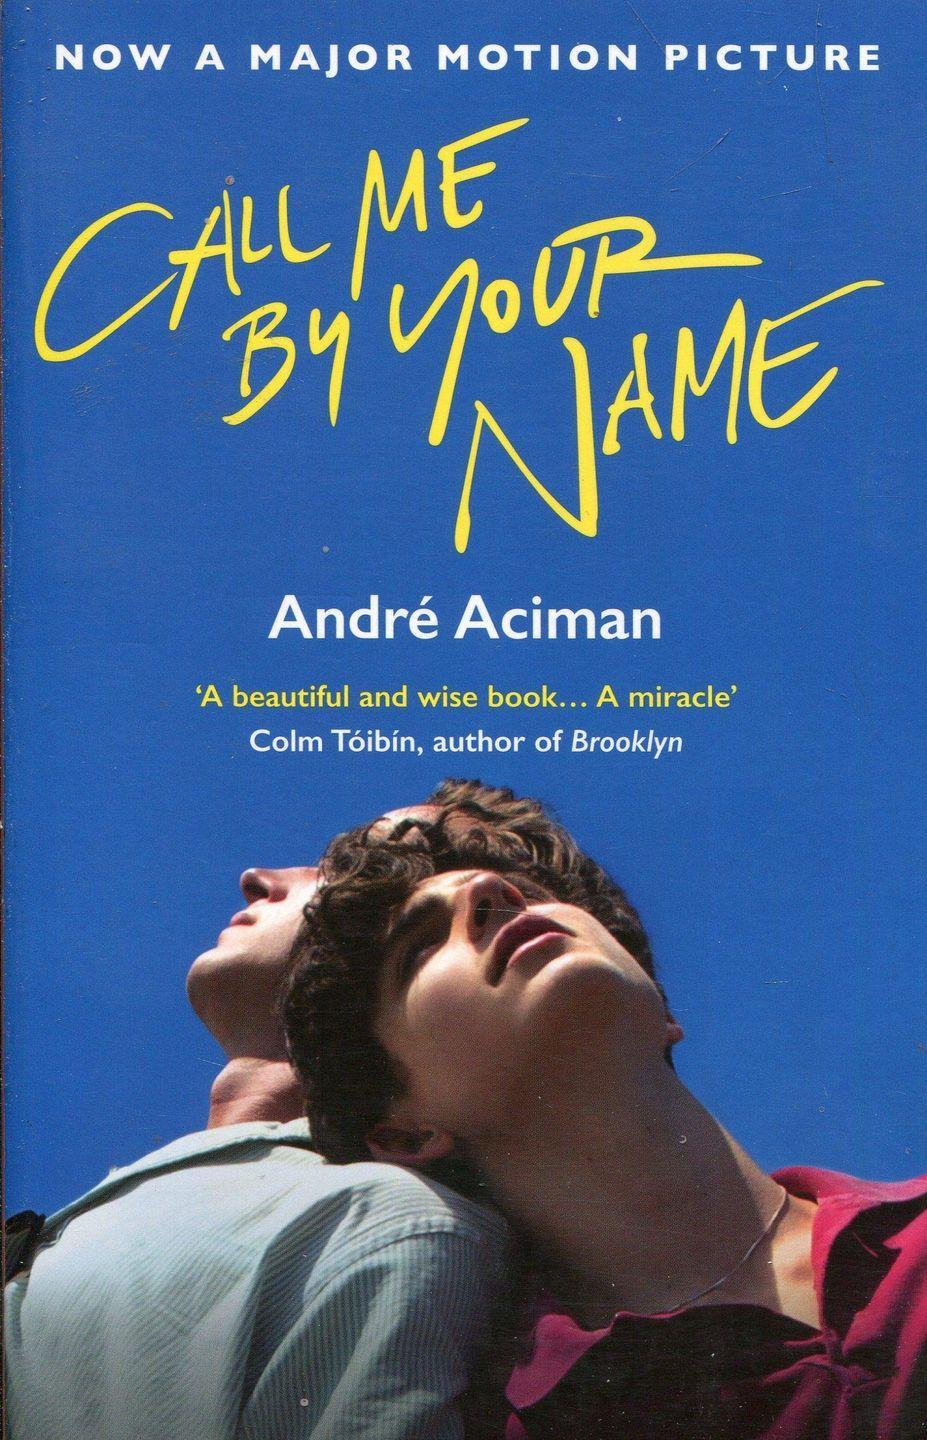 "<p>Now a box office hit starring Timothée Chalamet, the 2007 novel by André Aciman is a coming-of-age story that follows the blossoming romance between an adolescent boy and a summer guest at his parents' cliff-side mansion on the Italian Riviera.<br></p><p><a class=""link rapid-noclick-resp"" href=""https://www.amazon.co.uk/Call-Your-Name-Andre-Aciman/dp/1786495252/ref=sr_1_2?crid=3C72M0WM9QMG7&dchild=1&keywords=call+me+by+your+name&qid=1586956445&sprefix=CALL+ME+BY+YOU%2Caps%2C210&sr=8-2&tag=hearstuk-yahoo-21&ascsubtag=%5Bartid%7C1921.g.32141605%5Bsrc%7Cyahoo-uk"" rel=""nofollow noopener"" target=""_blank"" data-ylk=""slk:SHOP NOW"">SHOP NOW</a></p>"